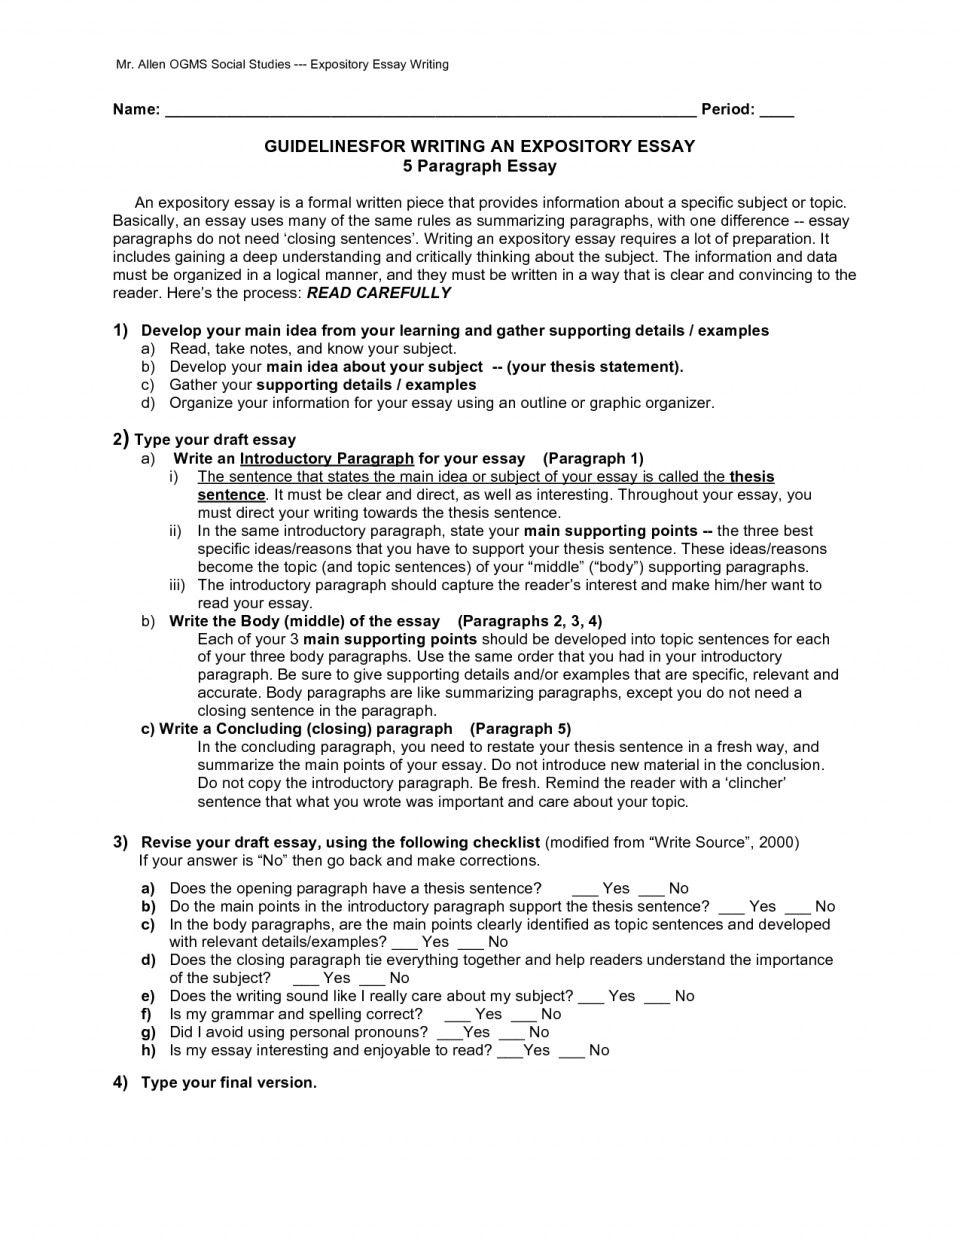 Health Essay  First Day Of High School Essay also How To Write A Thesis Sentence For An Essay Examples Thesis Statements Essays Thesis Statement For  Harvard Business School Essay